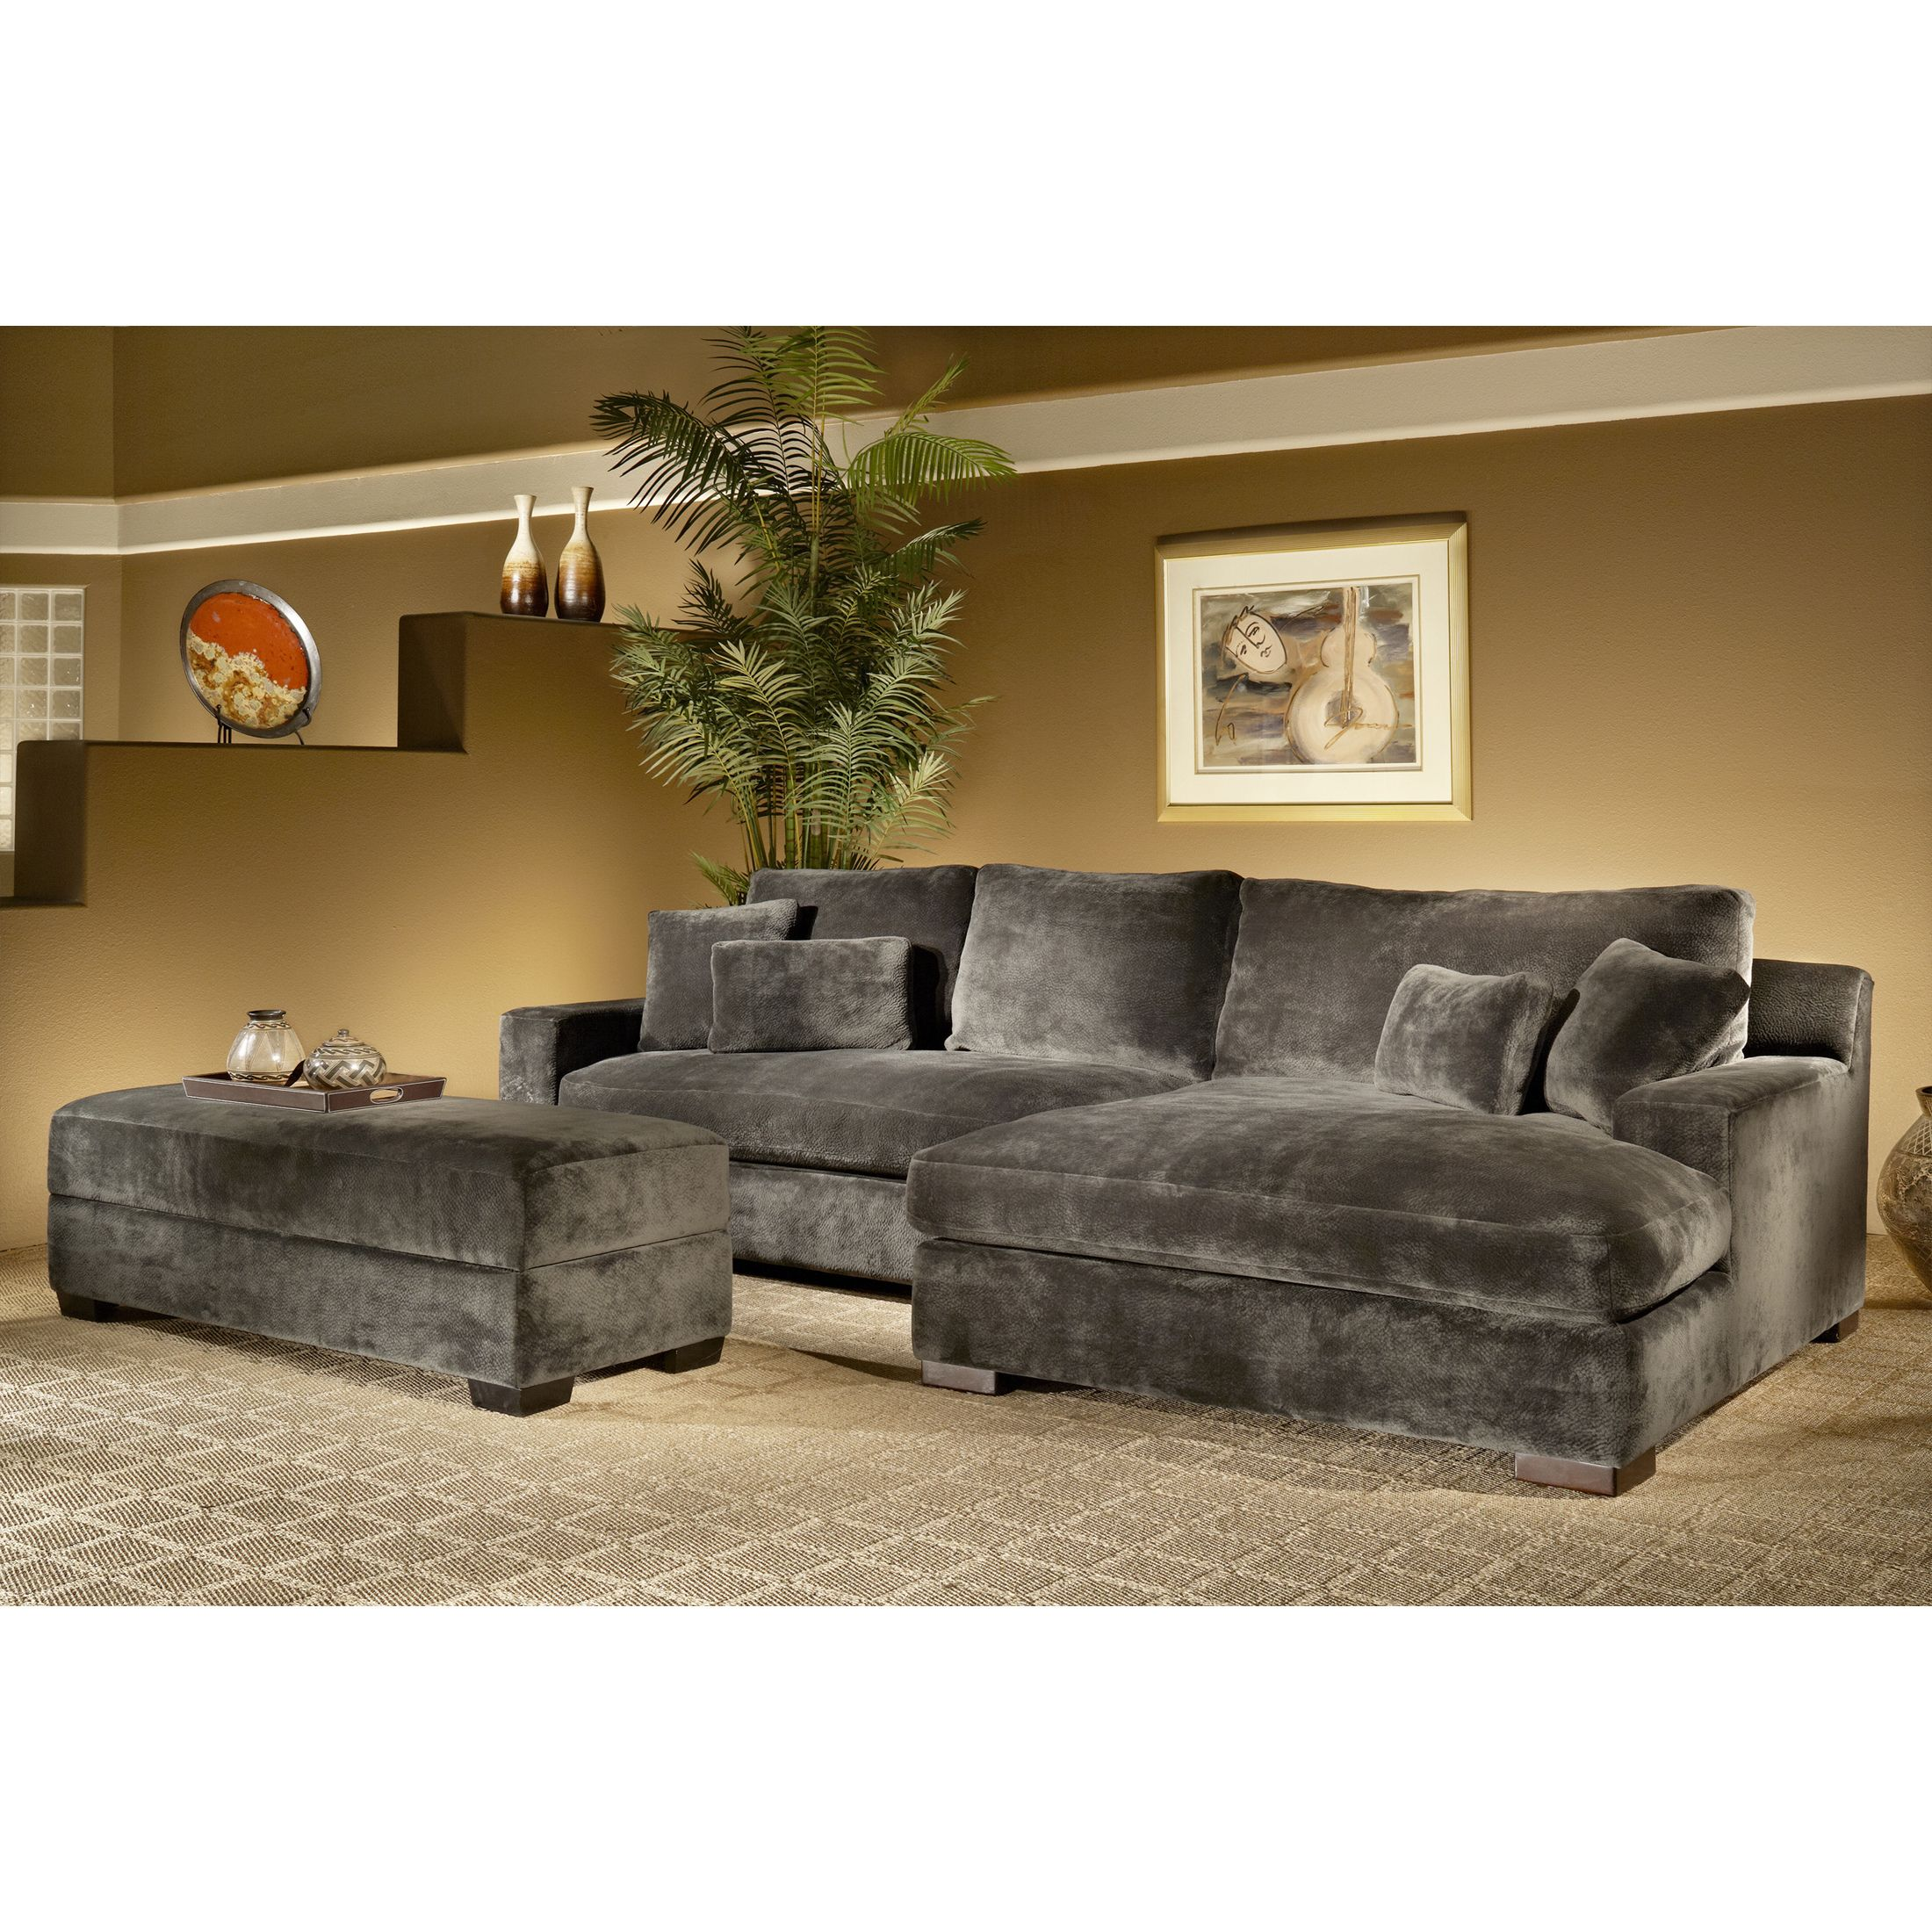 furniture chaise gray living outdoor oversized small sofa leather studs couches interesting modern teal modular glamorous grey norland brown for contemporary room microfiber with recliners cheap wonderful sale sleeper velvet couch light elegant of size reclining sectional full sofas